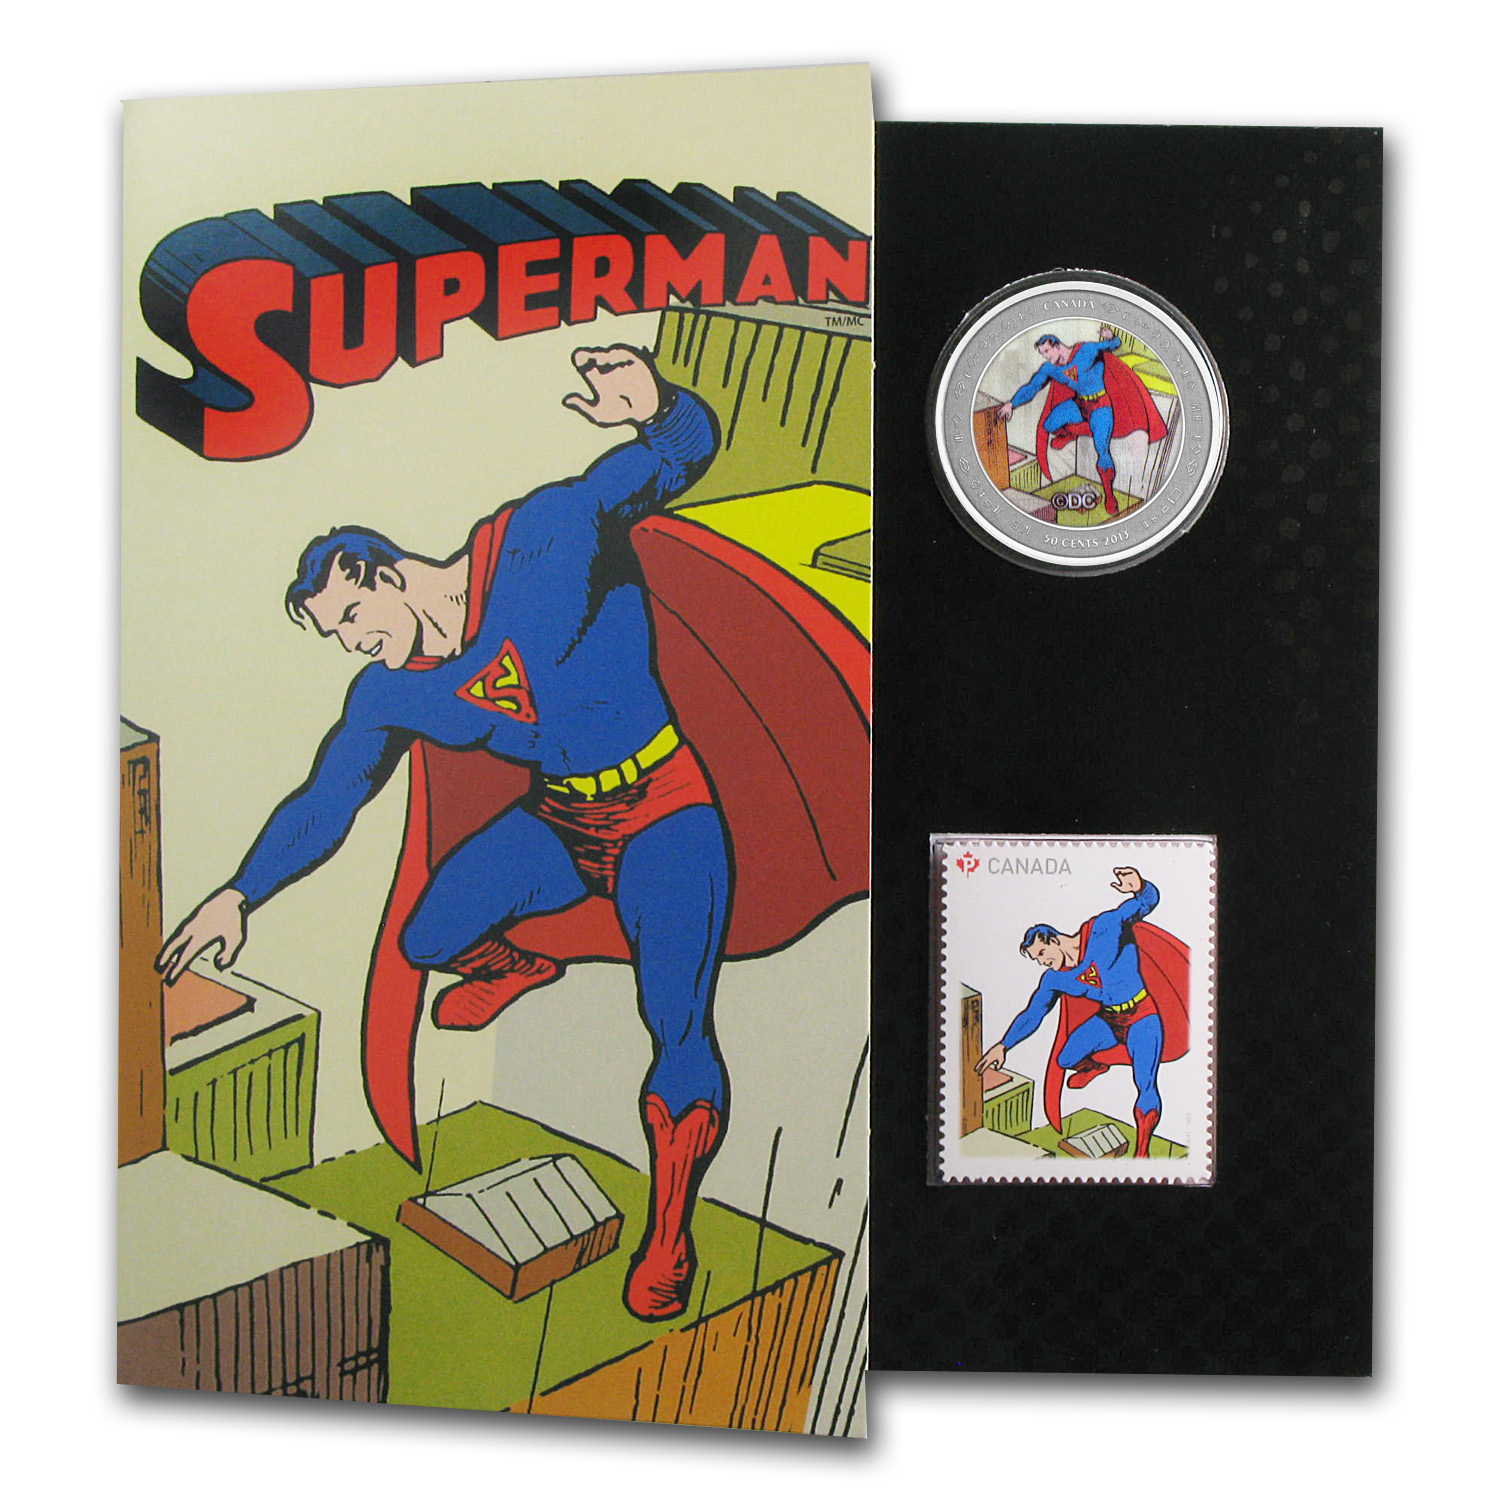 2013 Canada 75th Anniv. of Superman™ Then & Now-Coin & Stamp